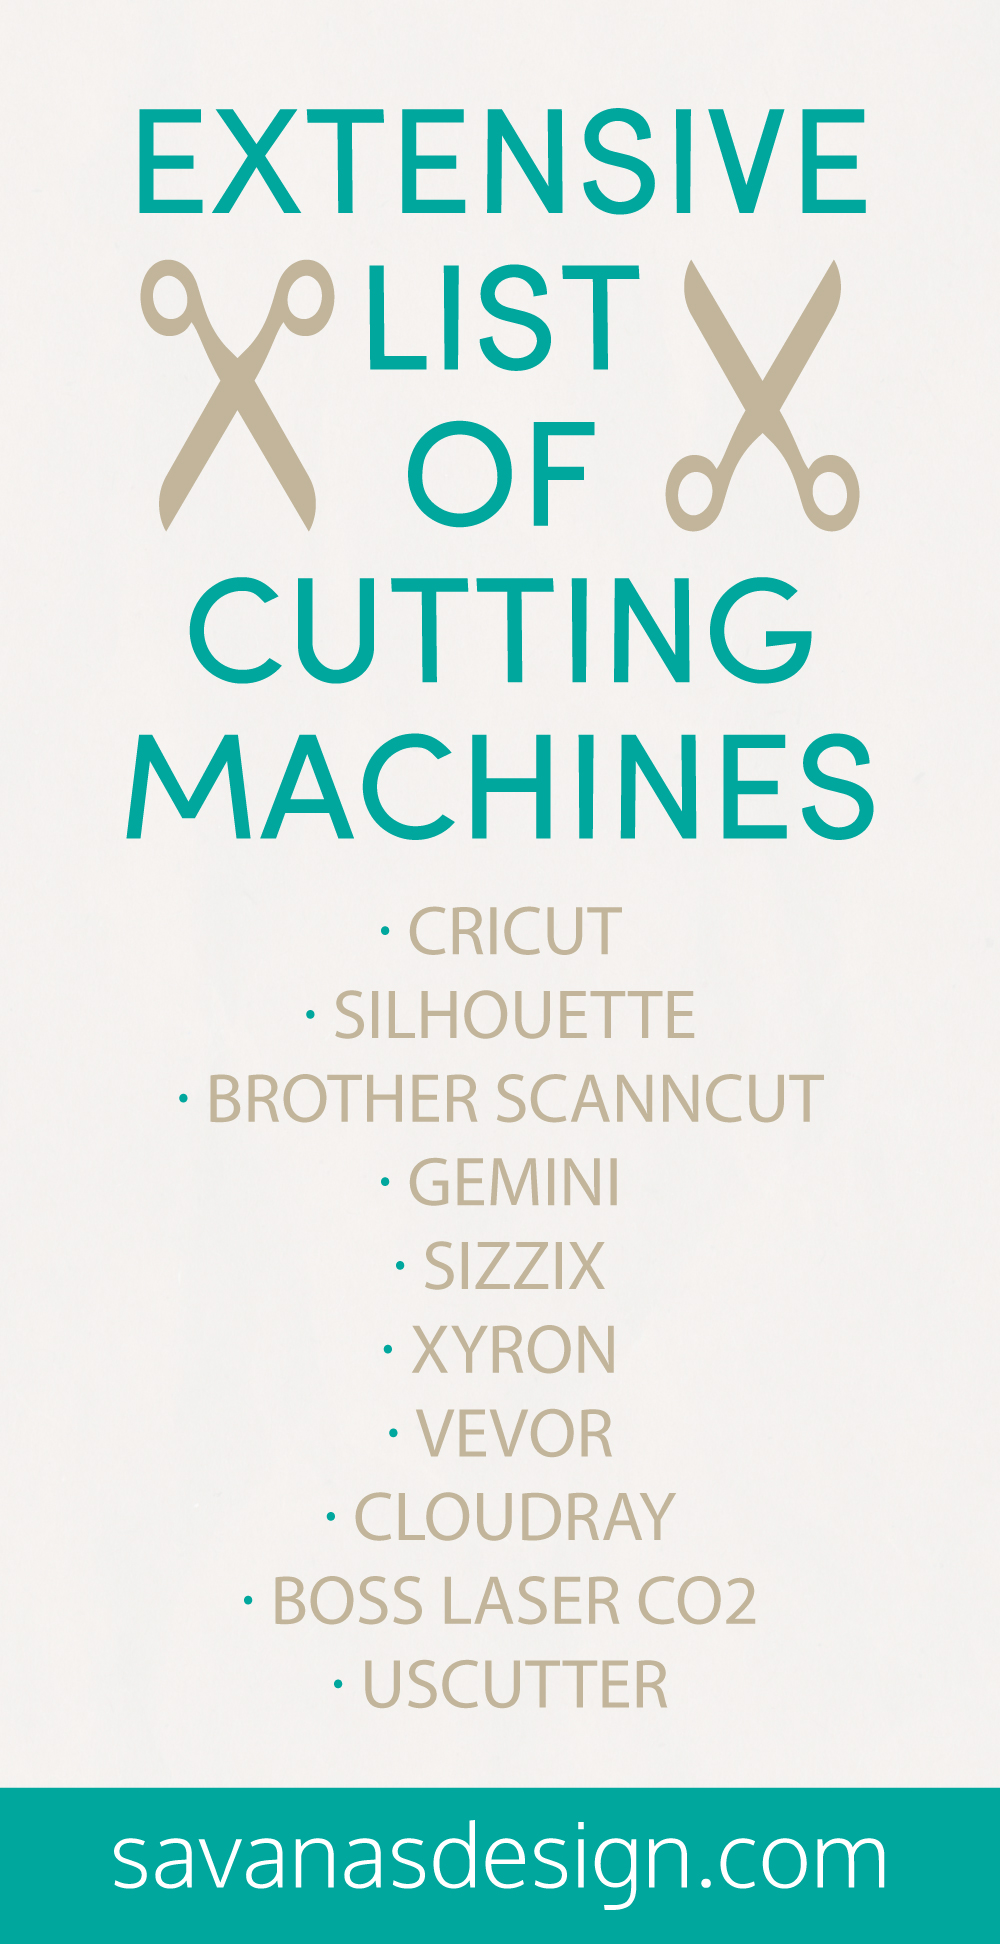 Extensive List of Cutting Machines Pinterest